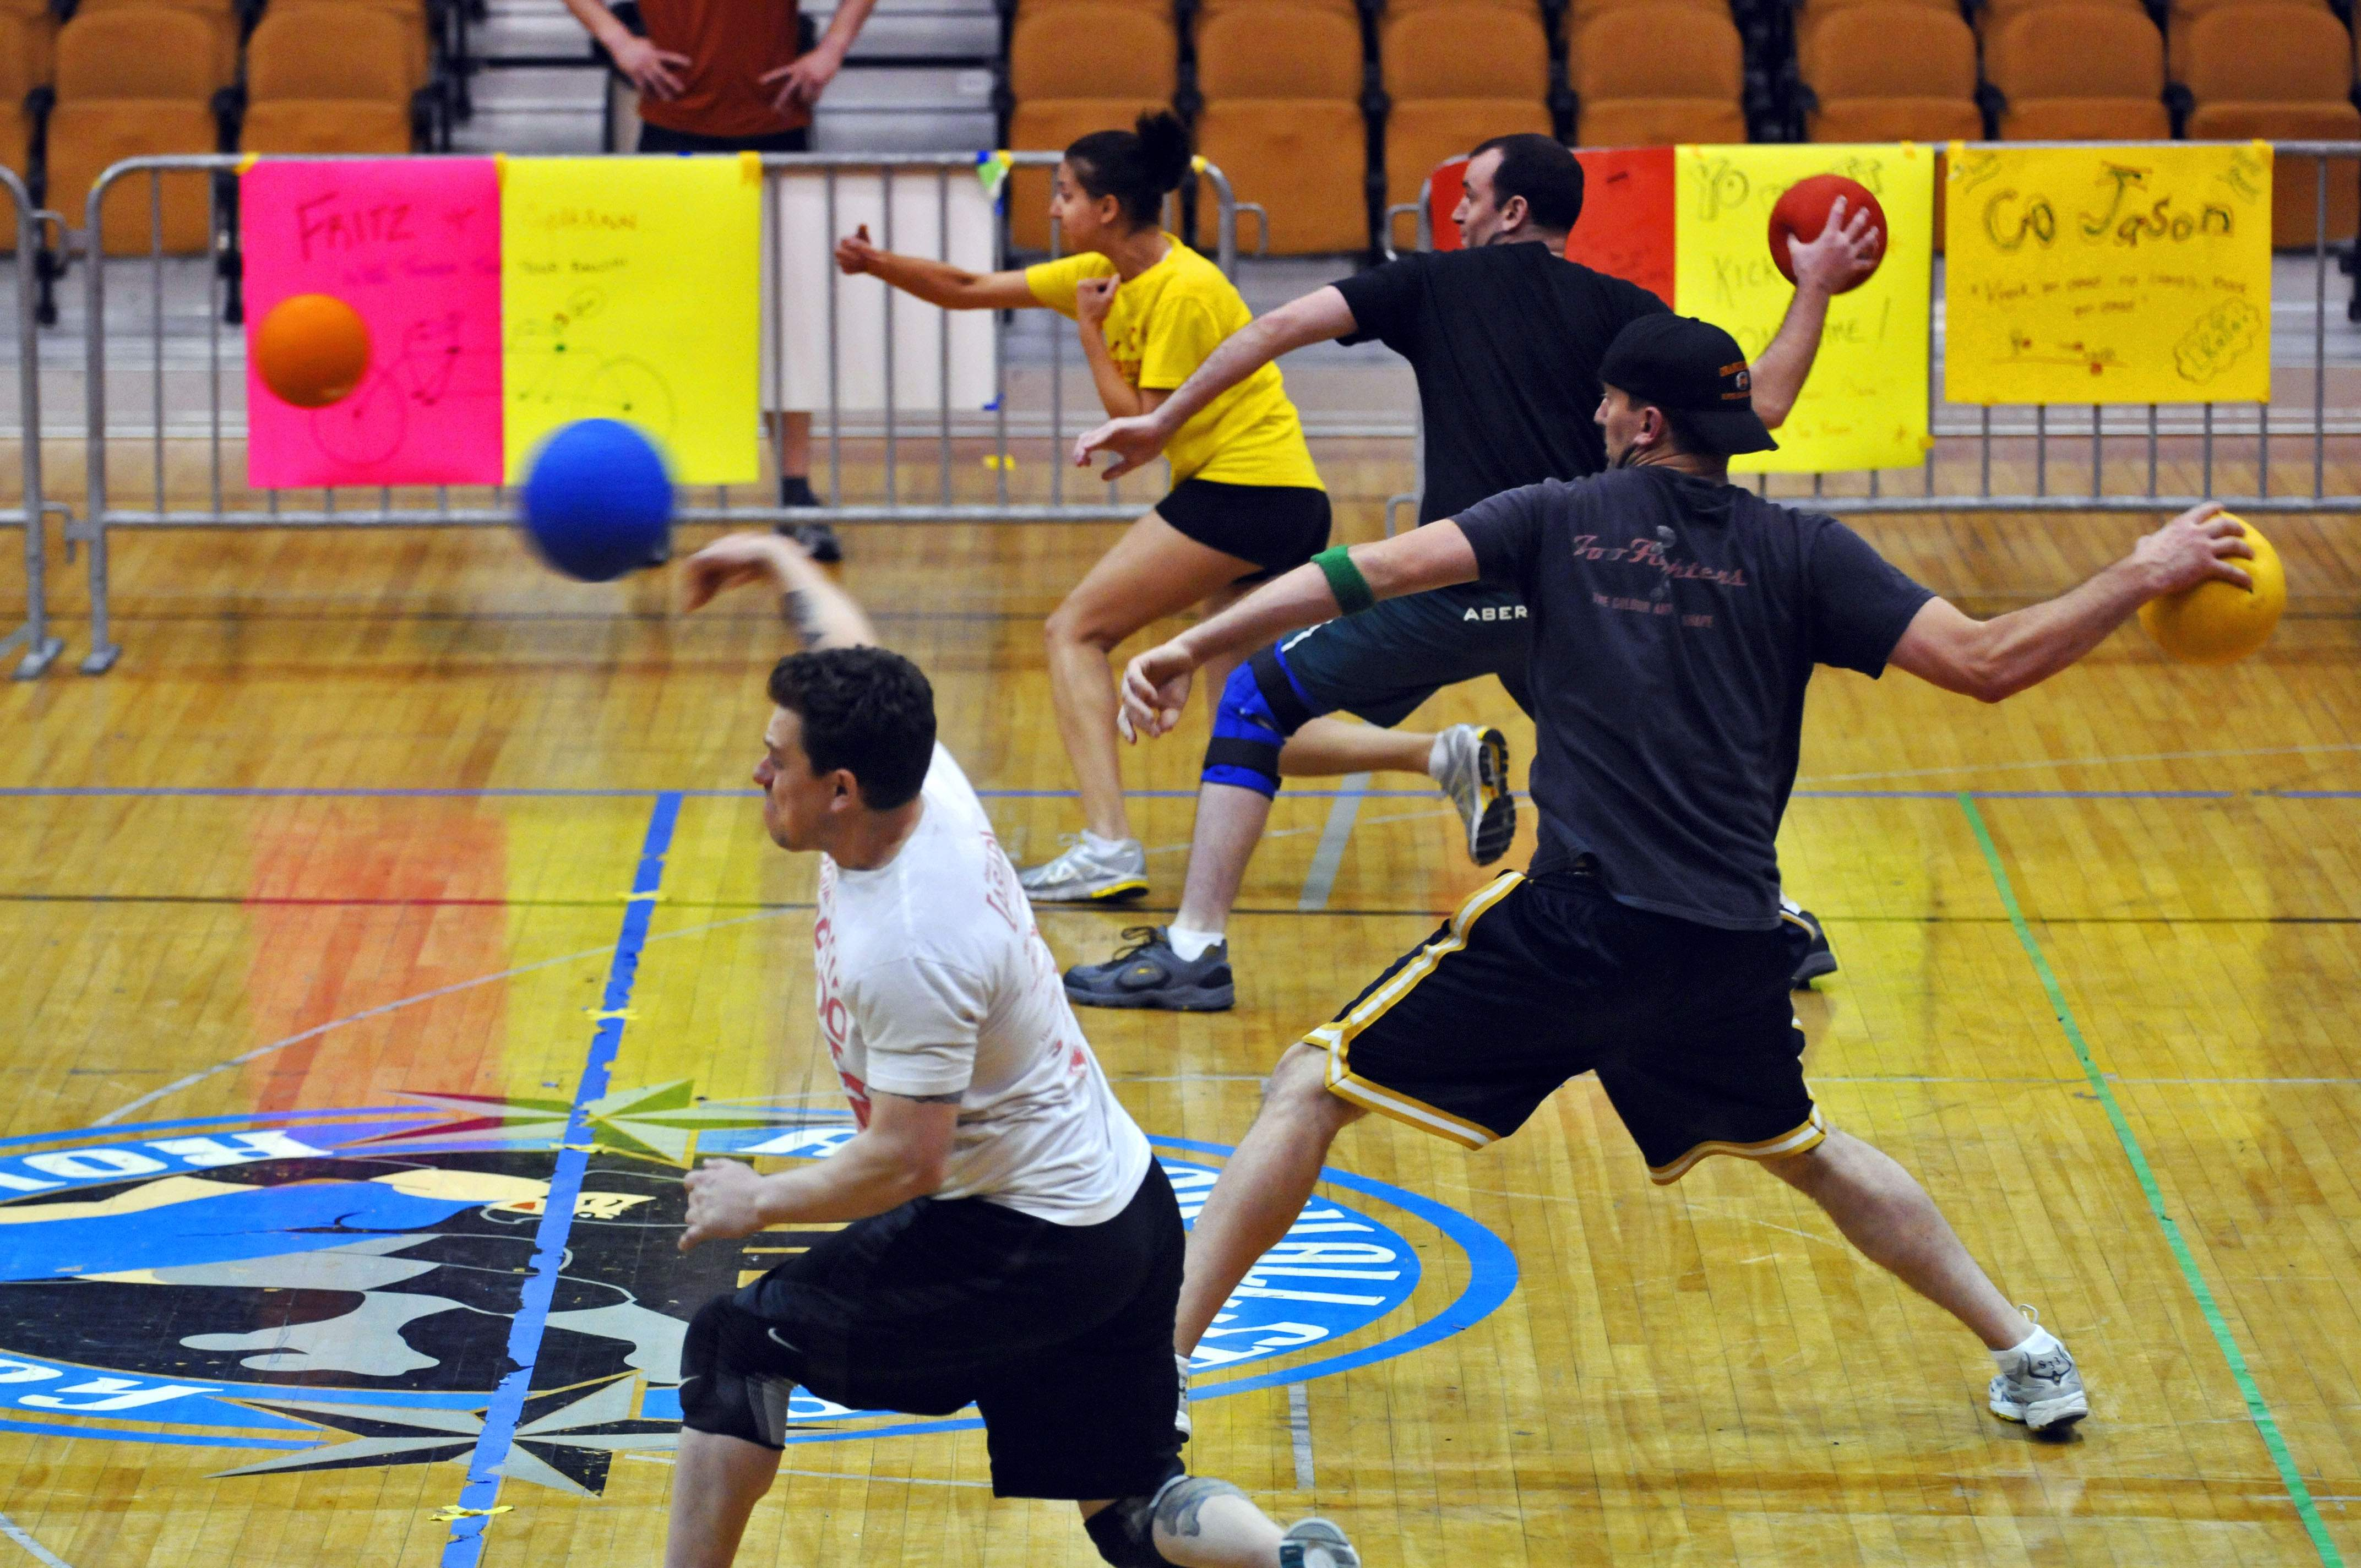 dodgeball in elementary school Dodgeball is not oppressing our children, it is teaching them life